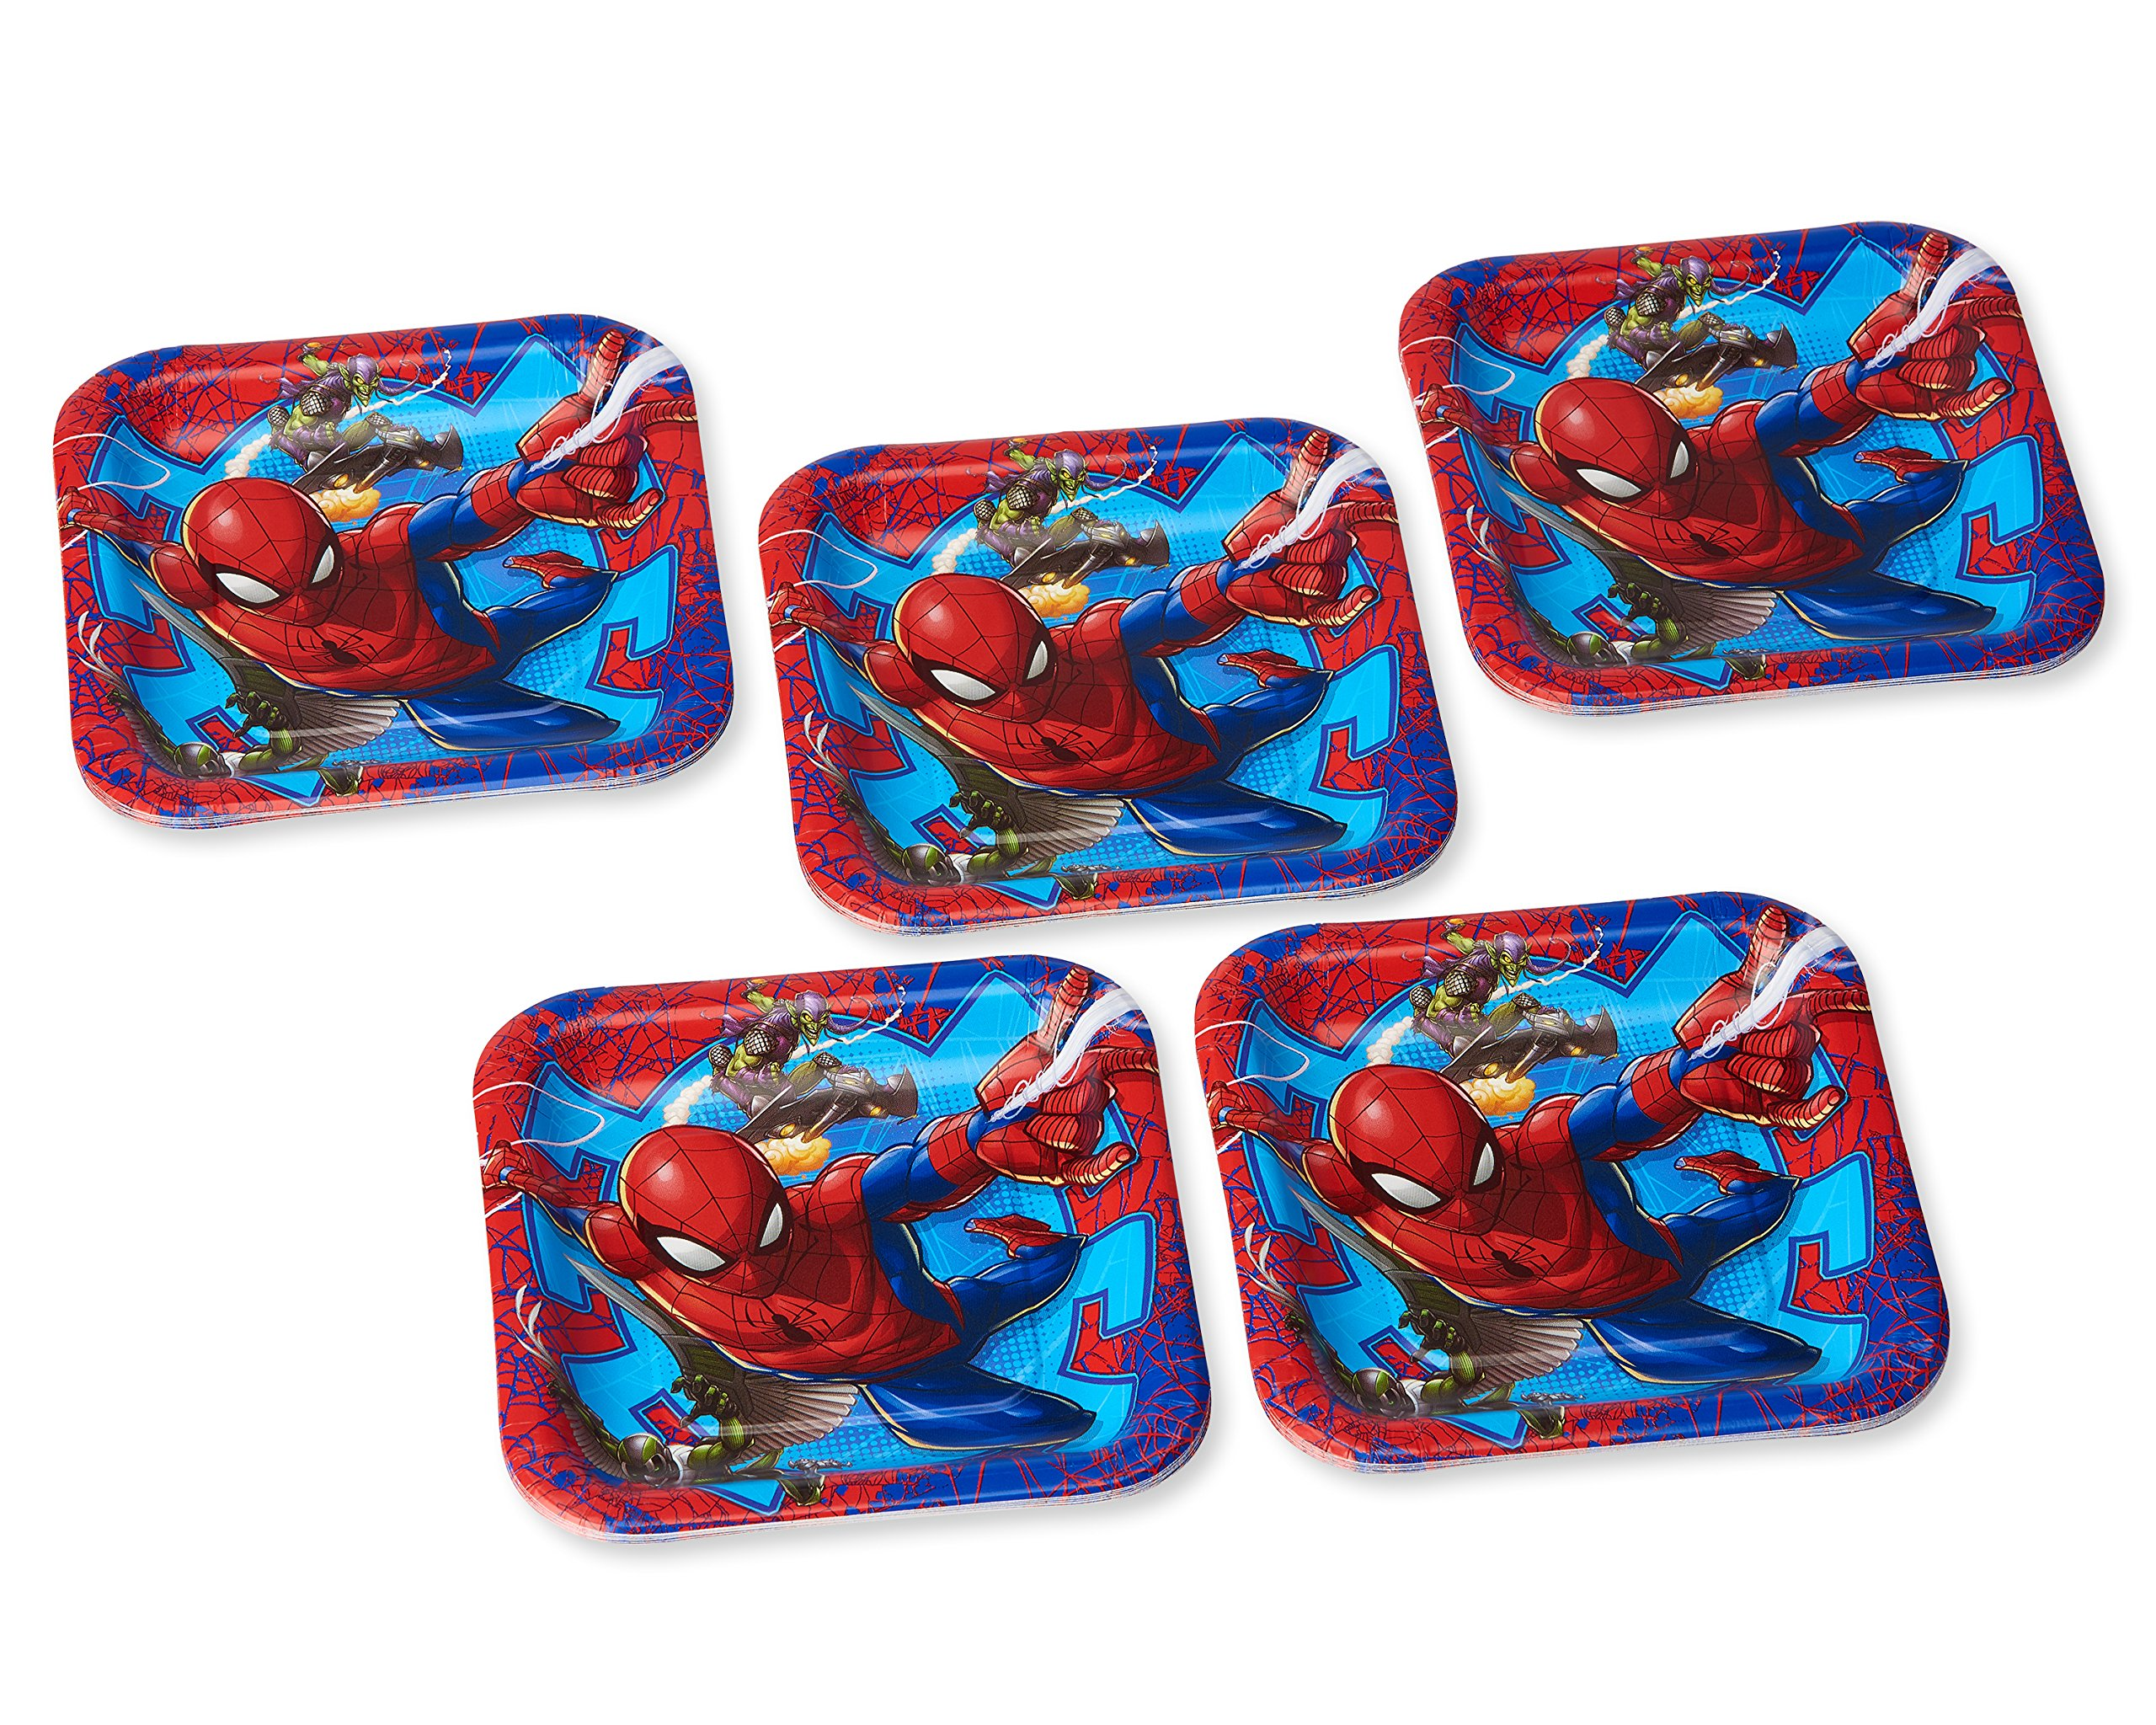 American Greetings Spider-Man 2 Party Supplies, Disposable Paper Dinner Plates, 40-Count by American Greetings